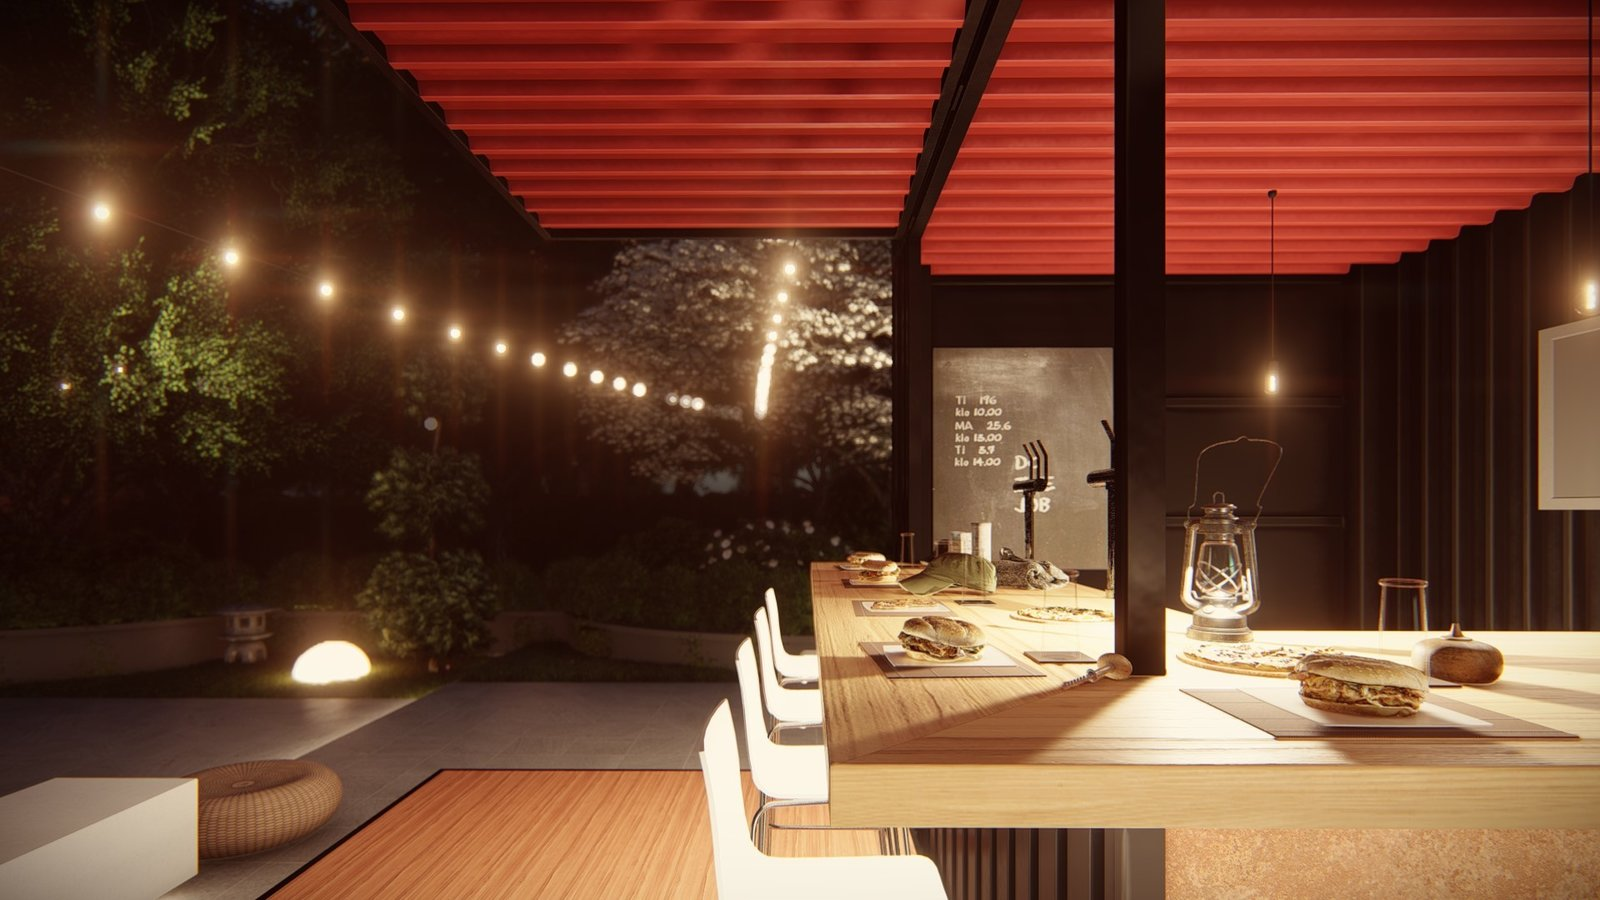 This Prefab Container Bar Can Pop Up Just About Anywhere